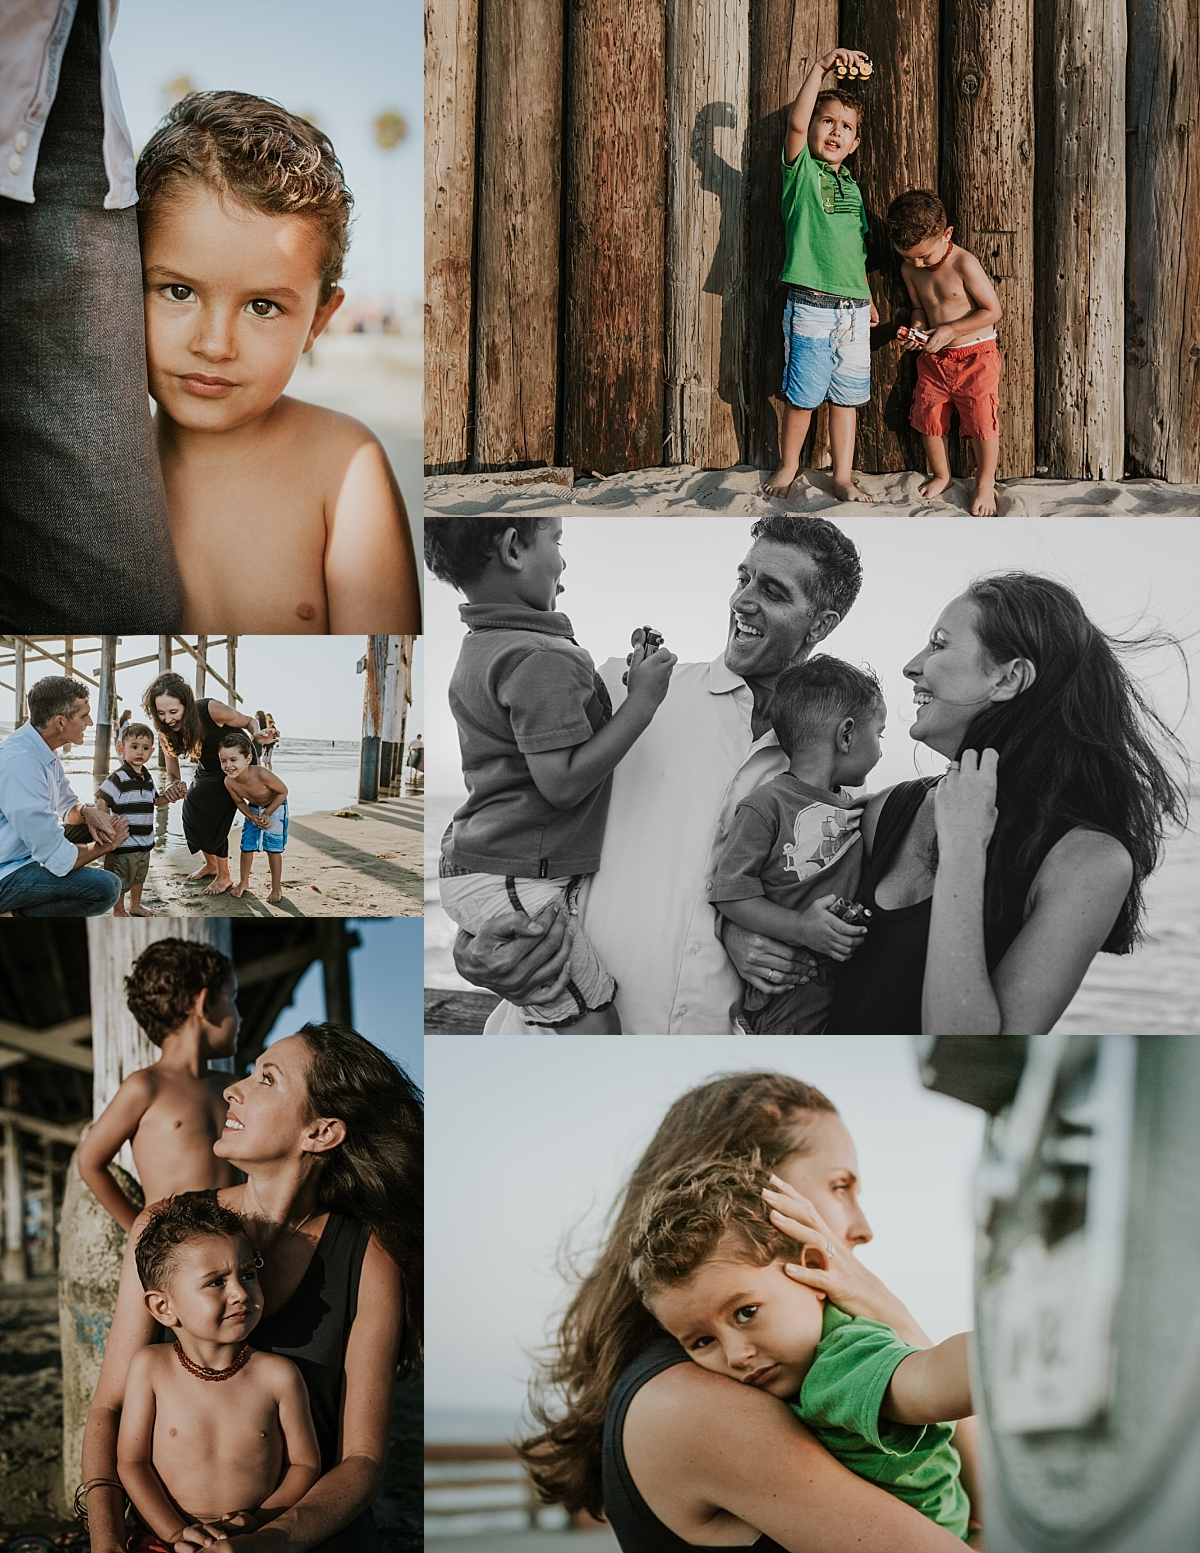 Family photo session at Newport Beach Pier by Krystil McDowall Photography